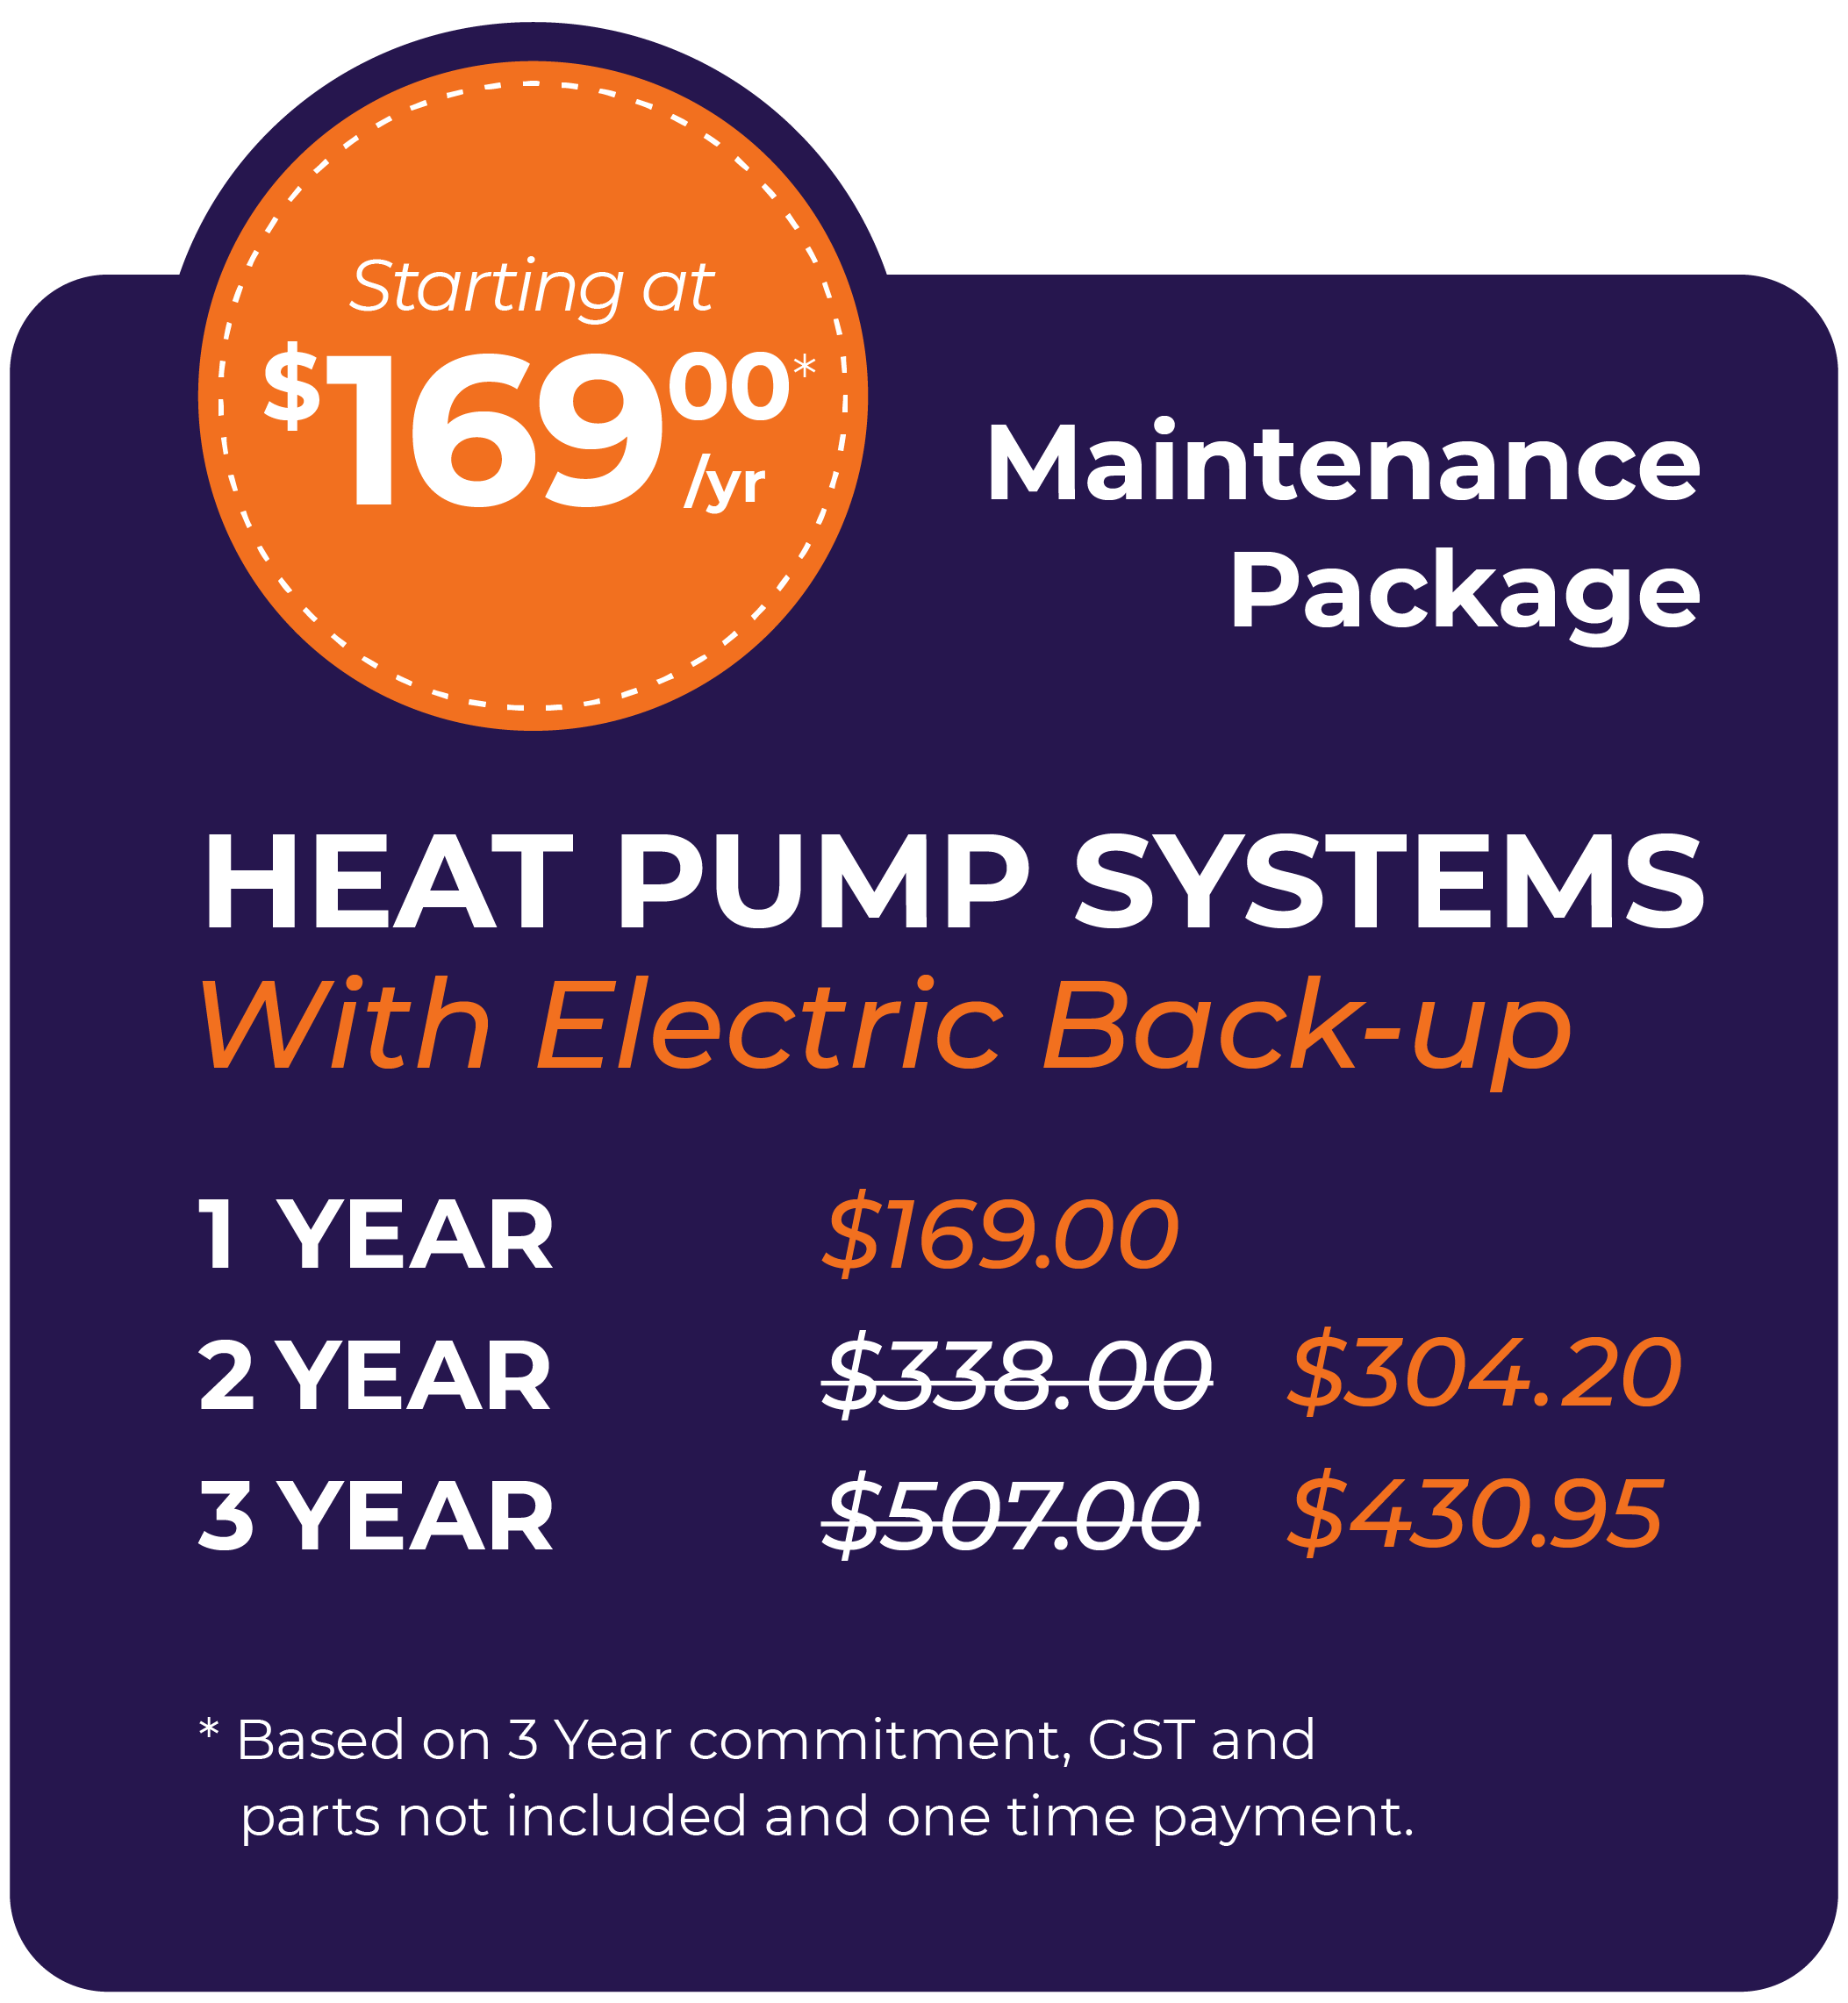 Heat Pump Systems with Electric Back-Up Maintenance Package